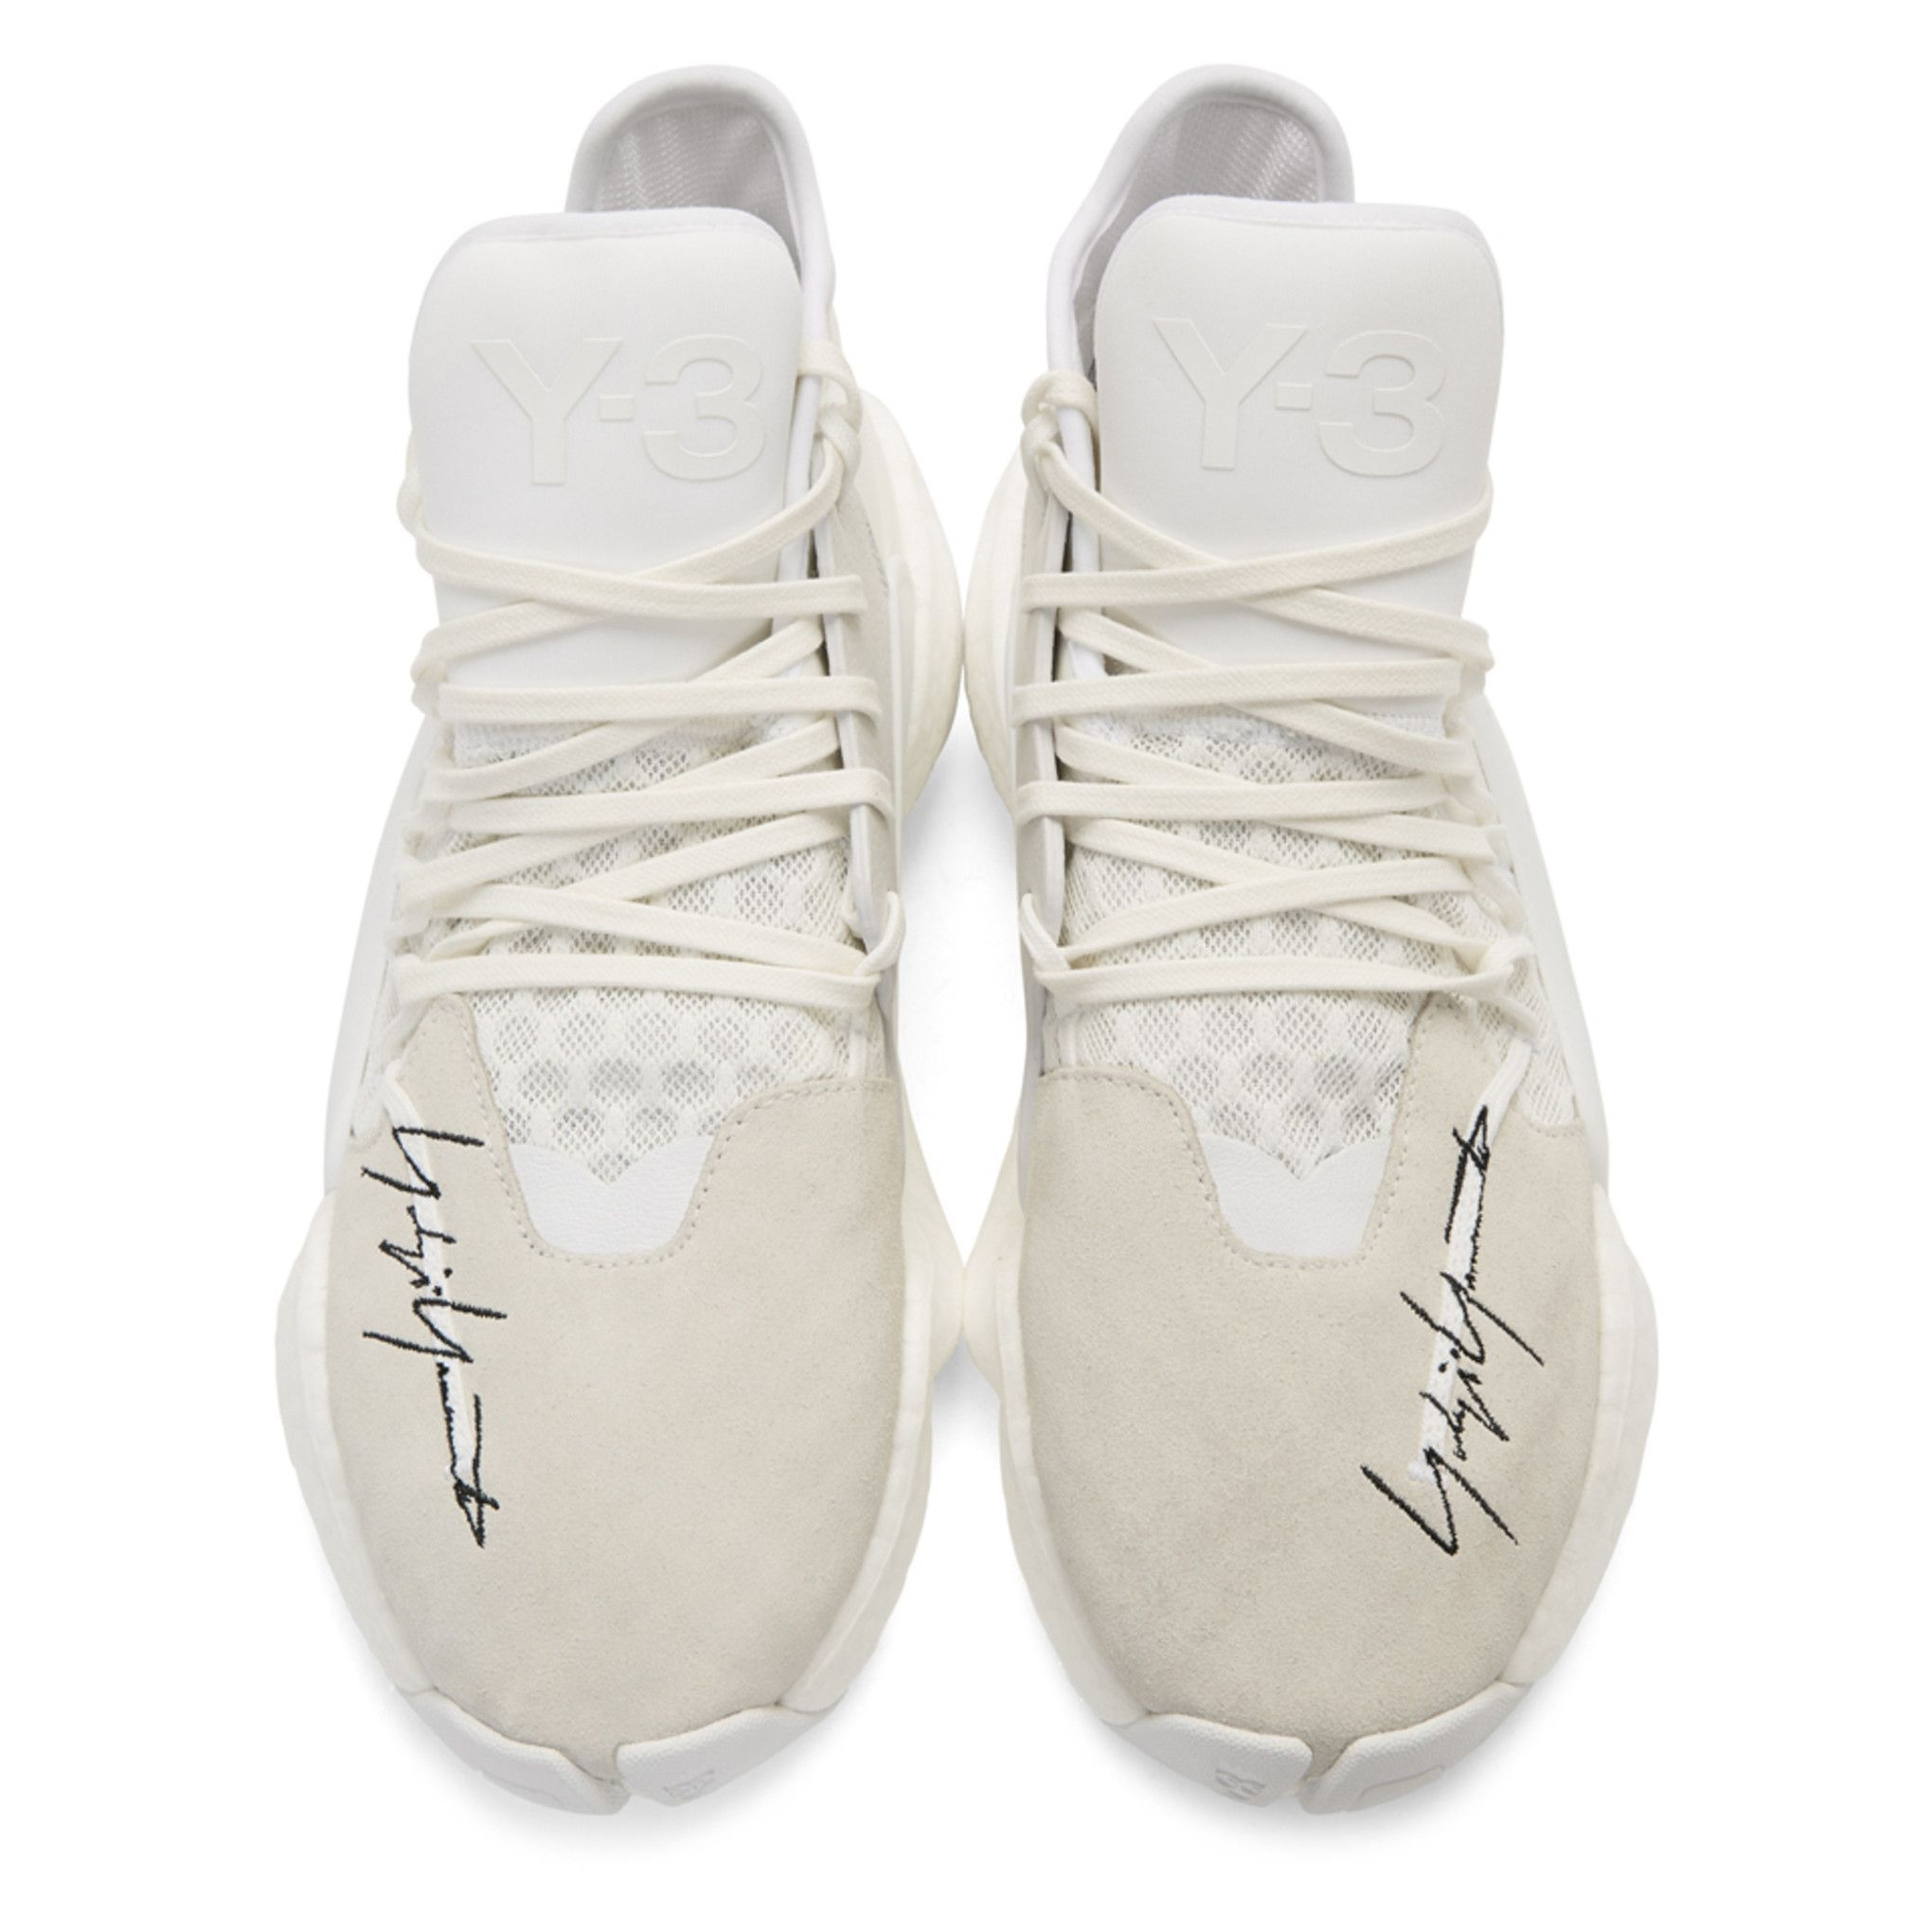 9be92eb80686 Y-3 - White James Harden Boost Sneakers James Harden